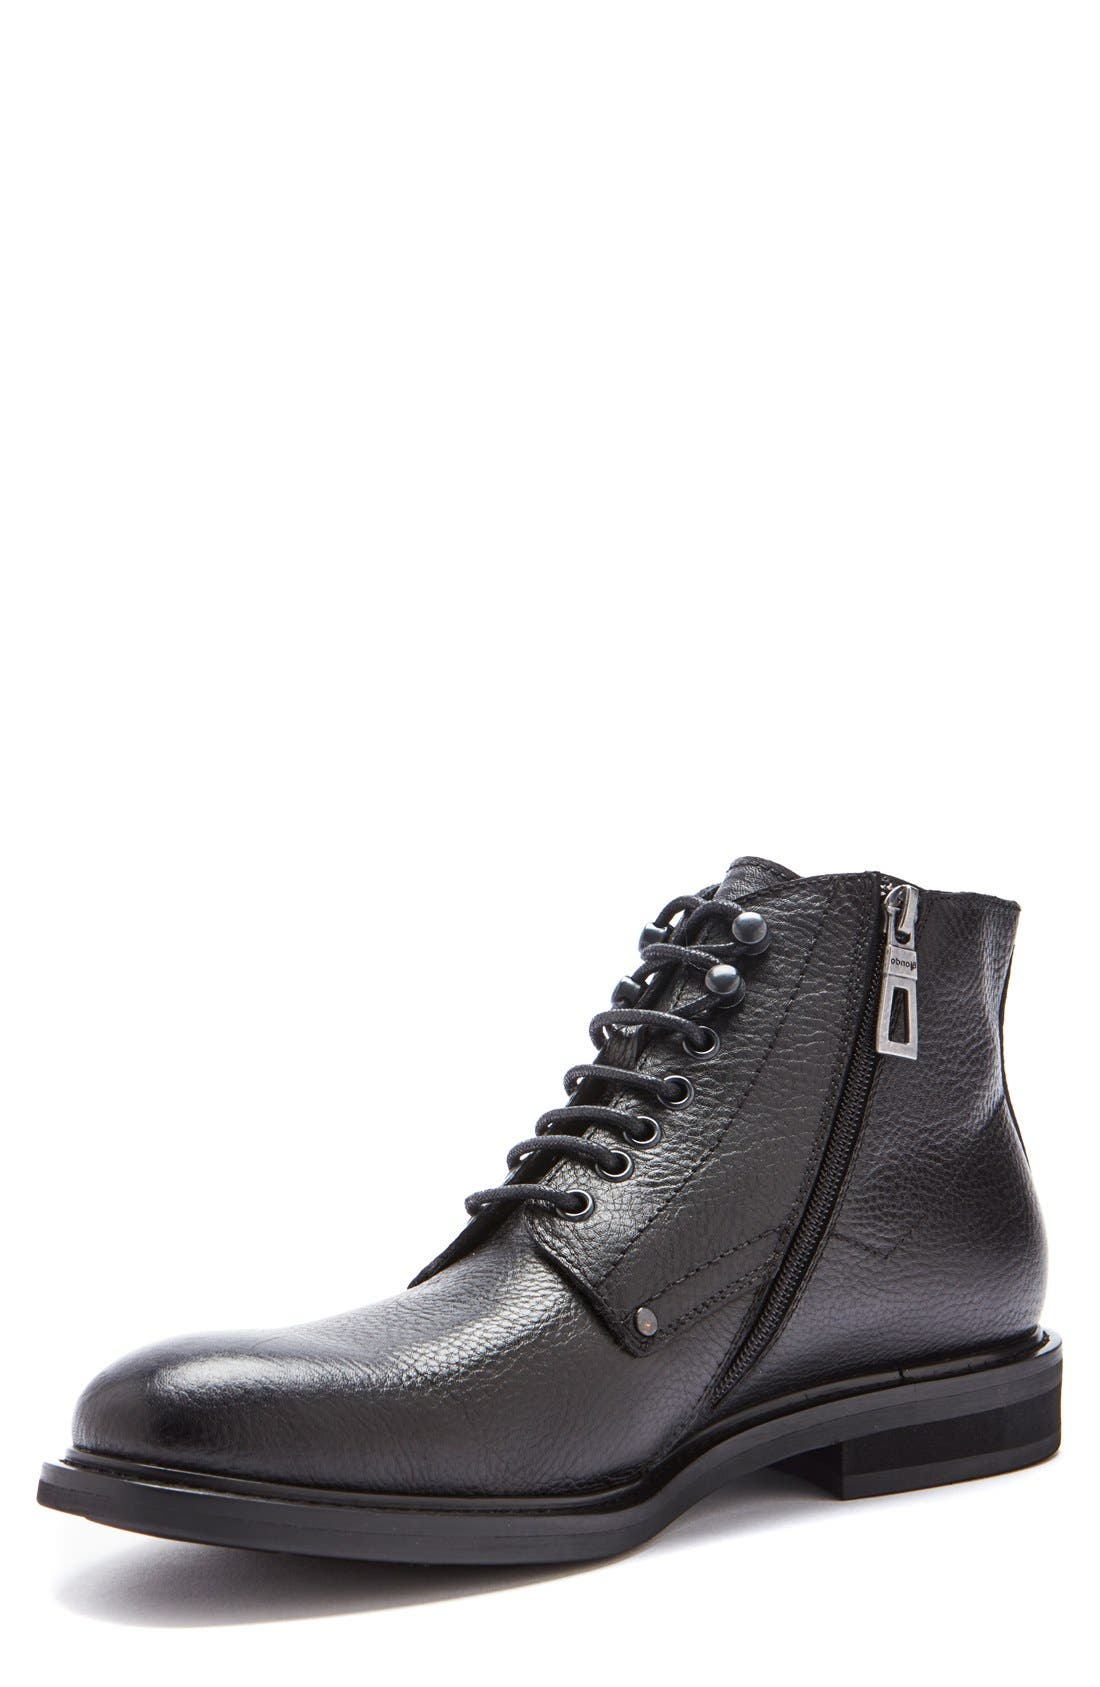 Alternate Image 1 Selected - Blondo 'Float' Waterproof Plain Toe Boot (Men)